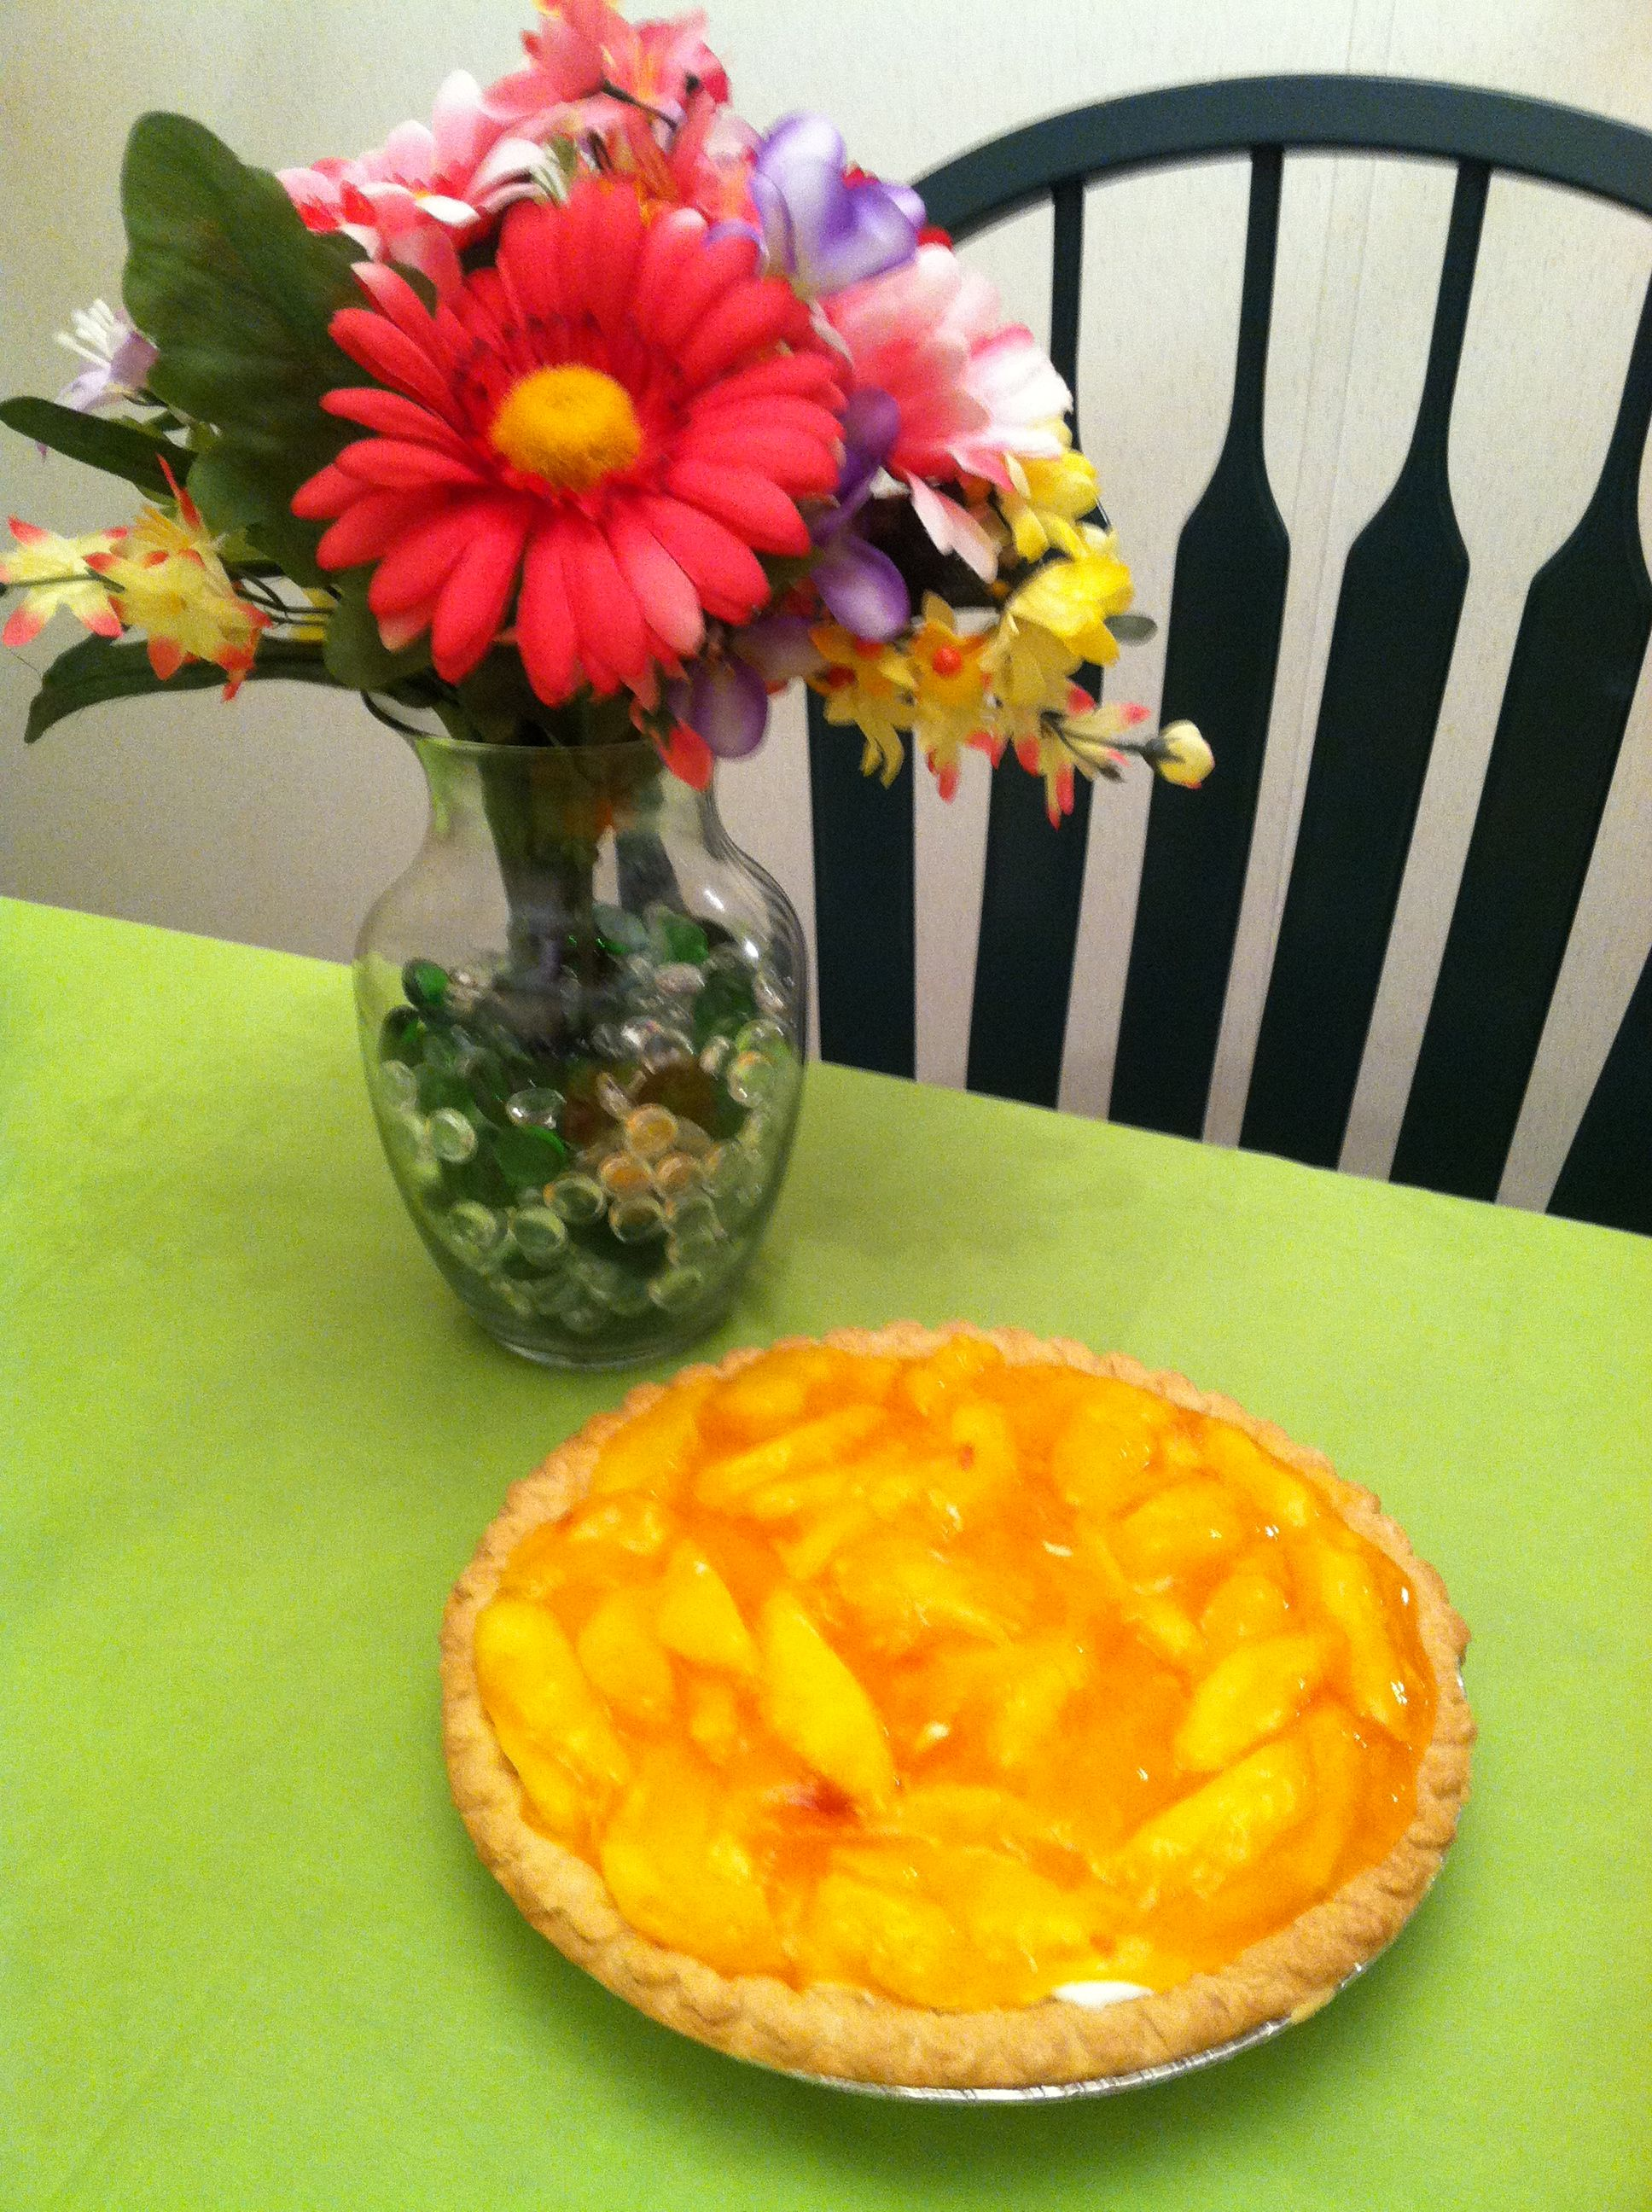 This is a peach pie I made. I found the recipe here on Pinterest somewhere, I think. I was absolutely wonderful. Background vase arrangement is something I threw together with left over flowers I had on hand.